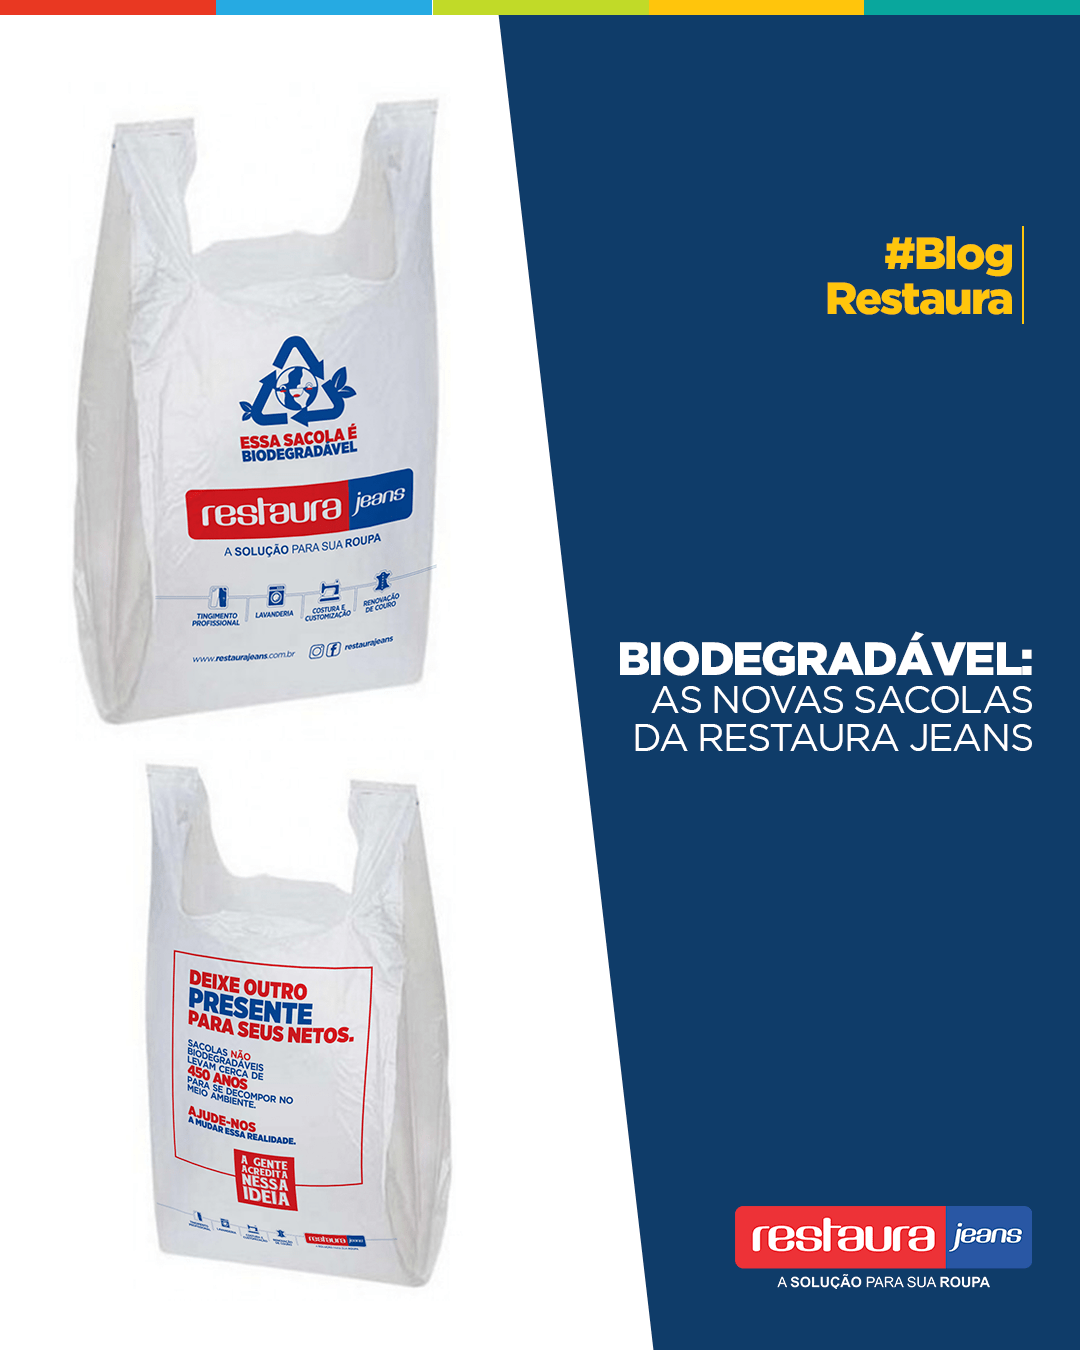 Biodegradável: As novas sacolas da Restaura Jeans